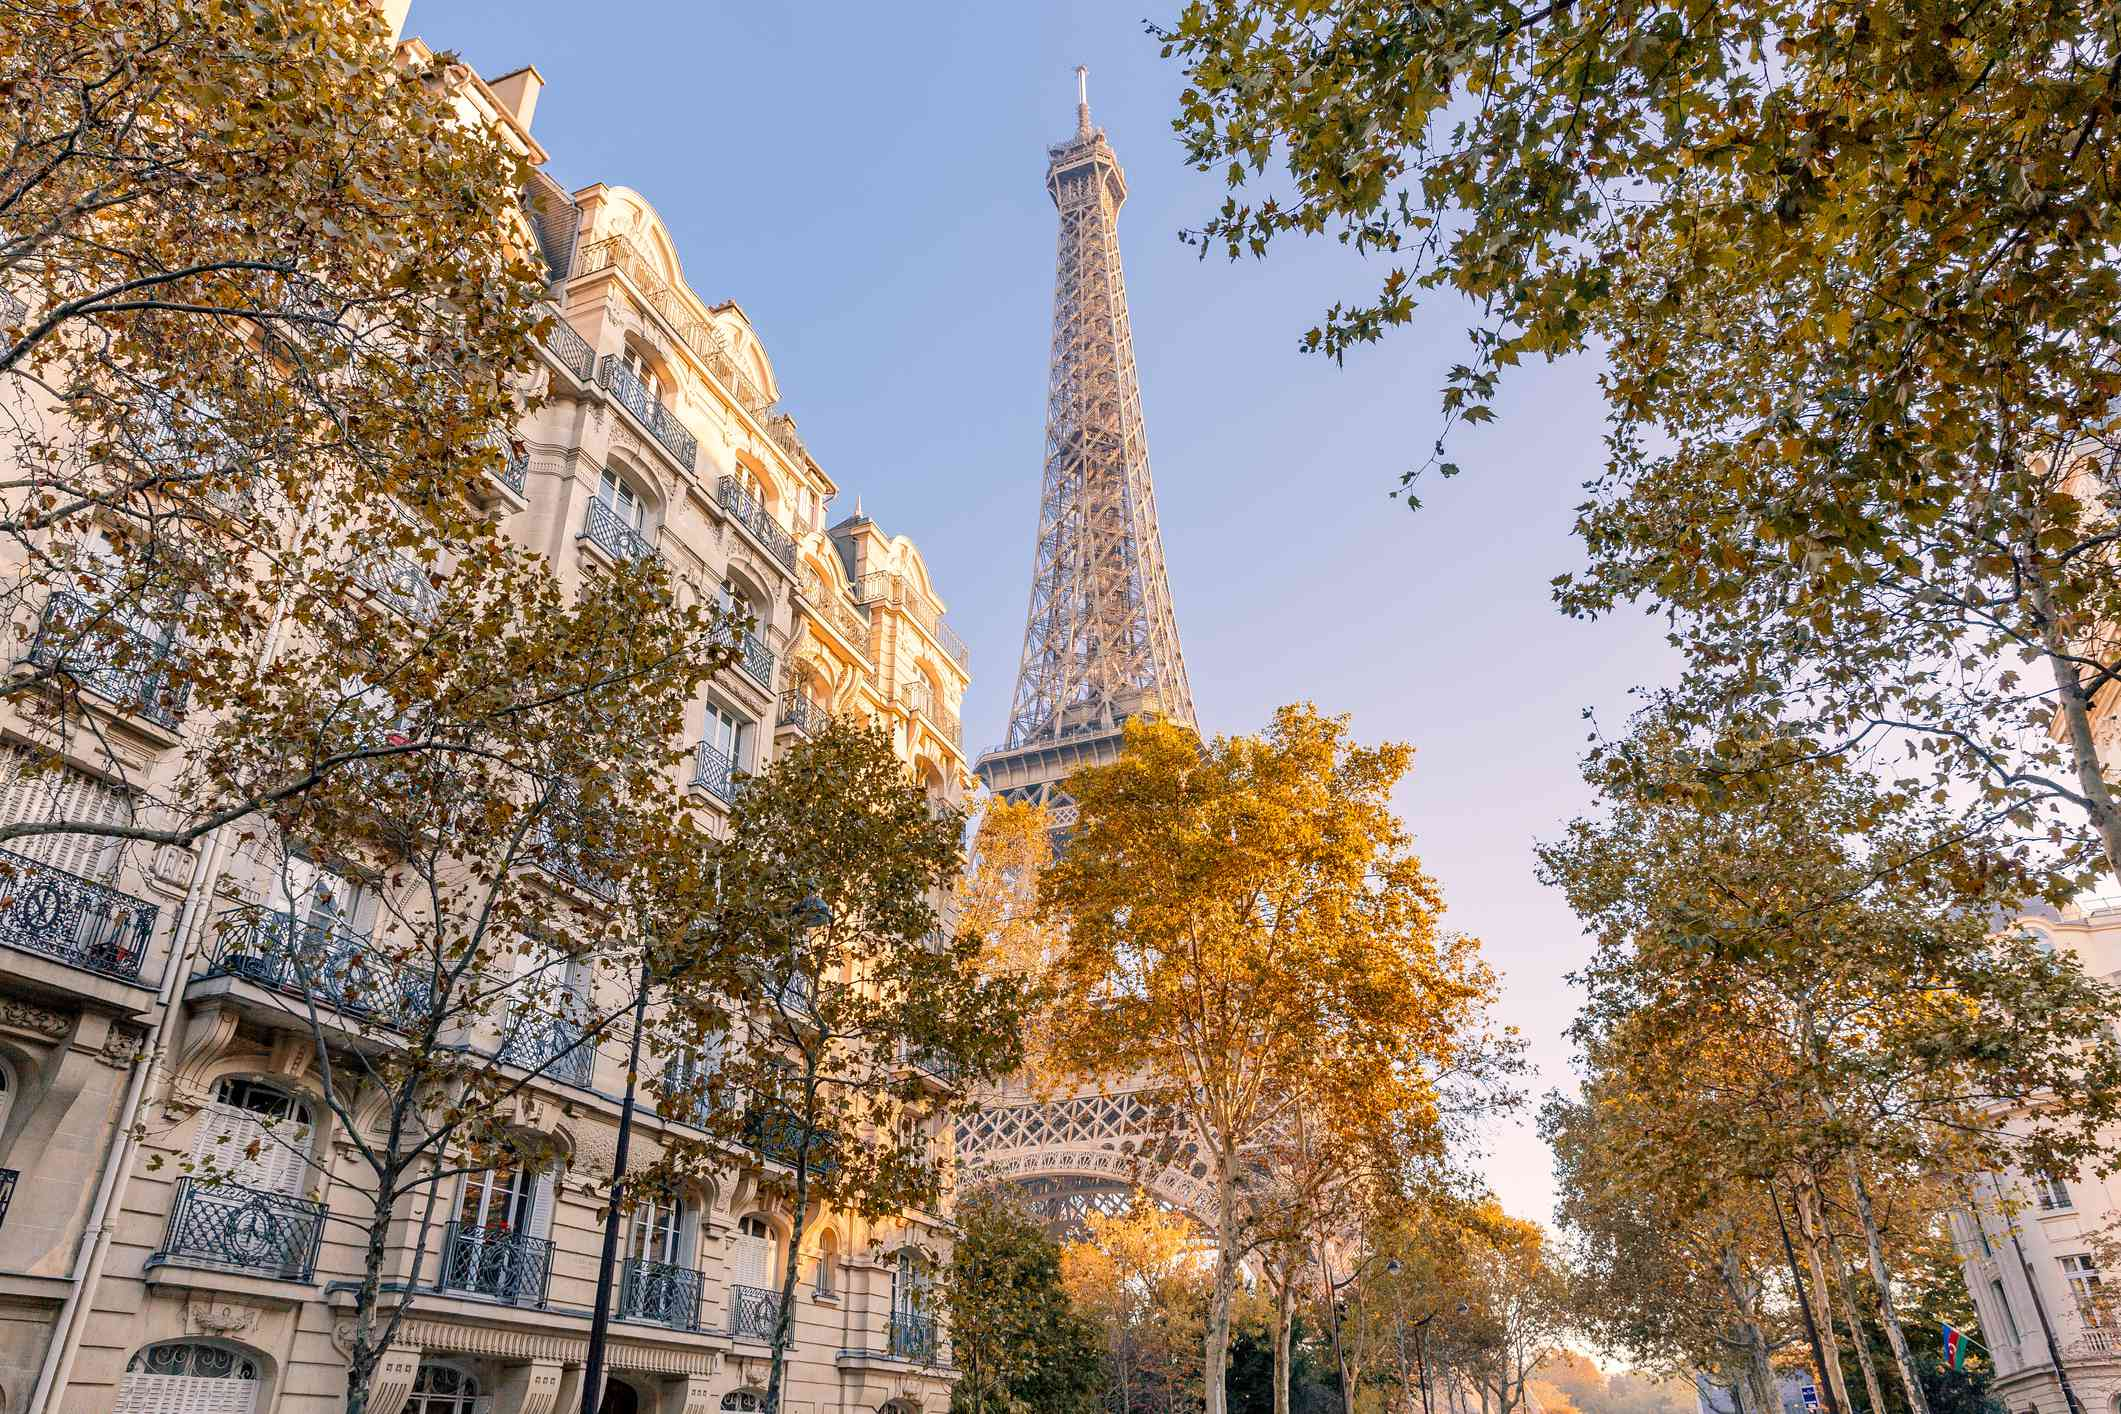 Low angle view of the Eiffel Tower in Autumn with buildings and trees in the foreground